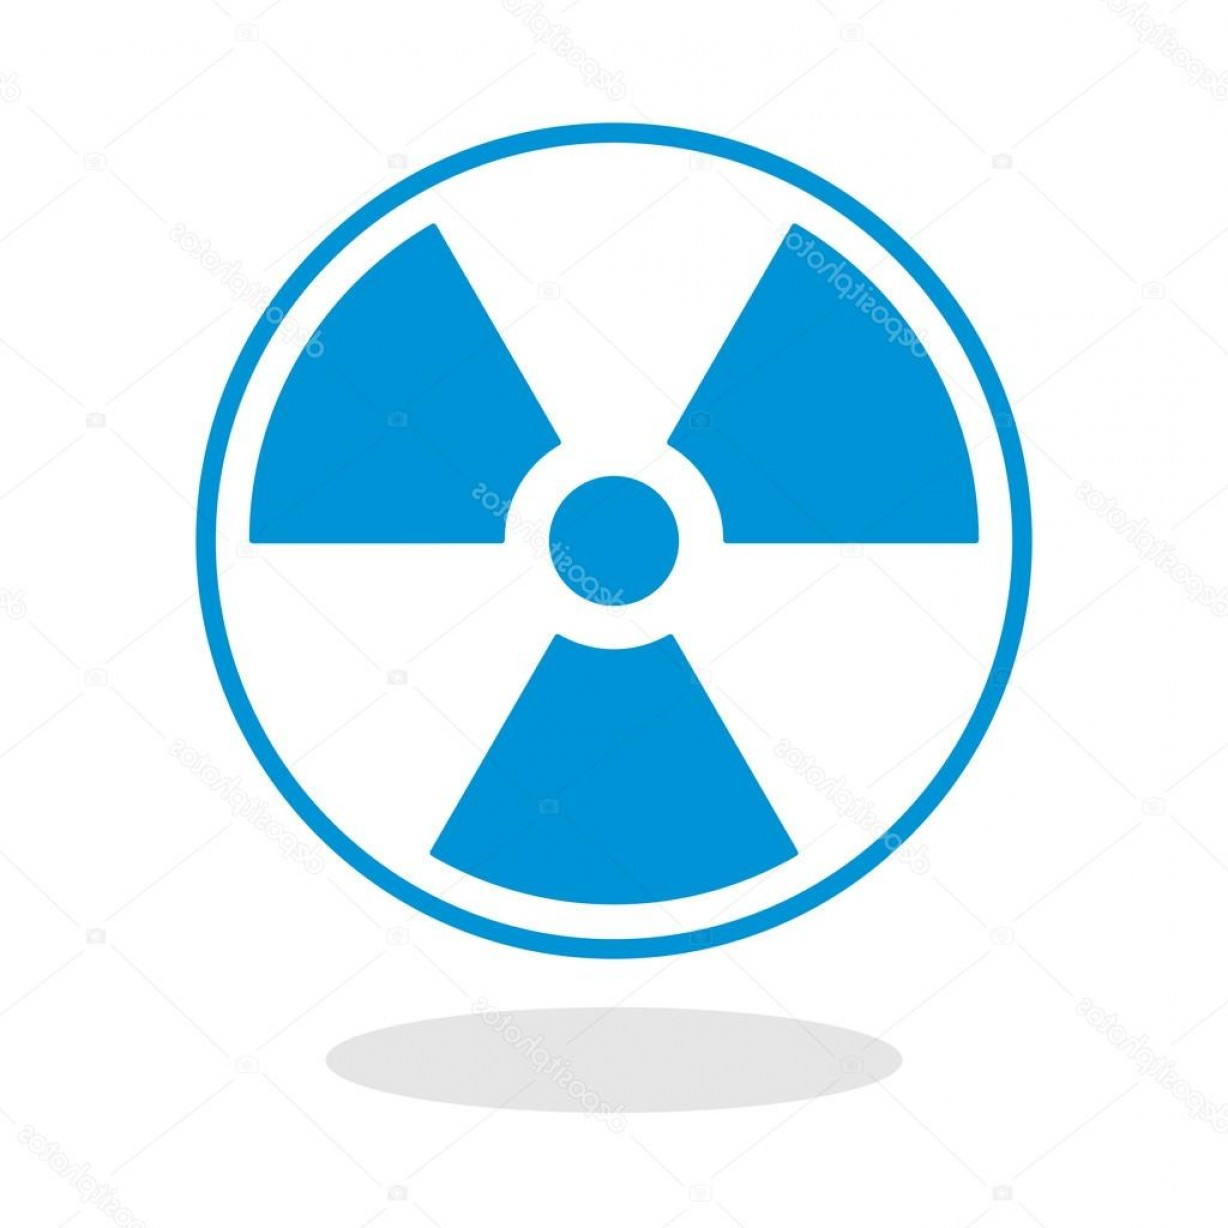 Radioactive Symbol Vector: Stock Illustration Icon Of A Radioactive Symbol